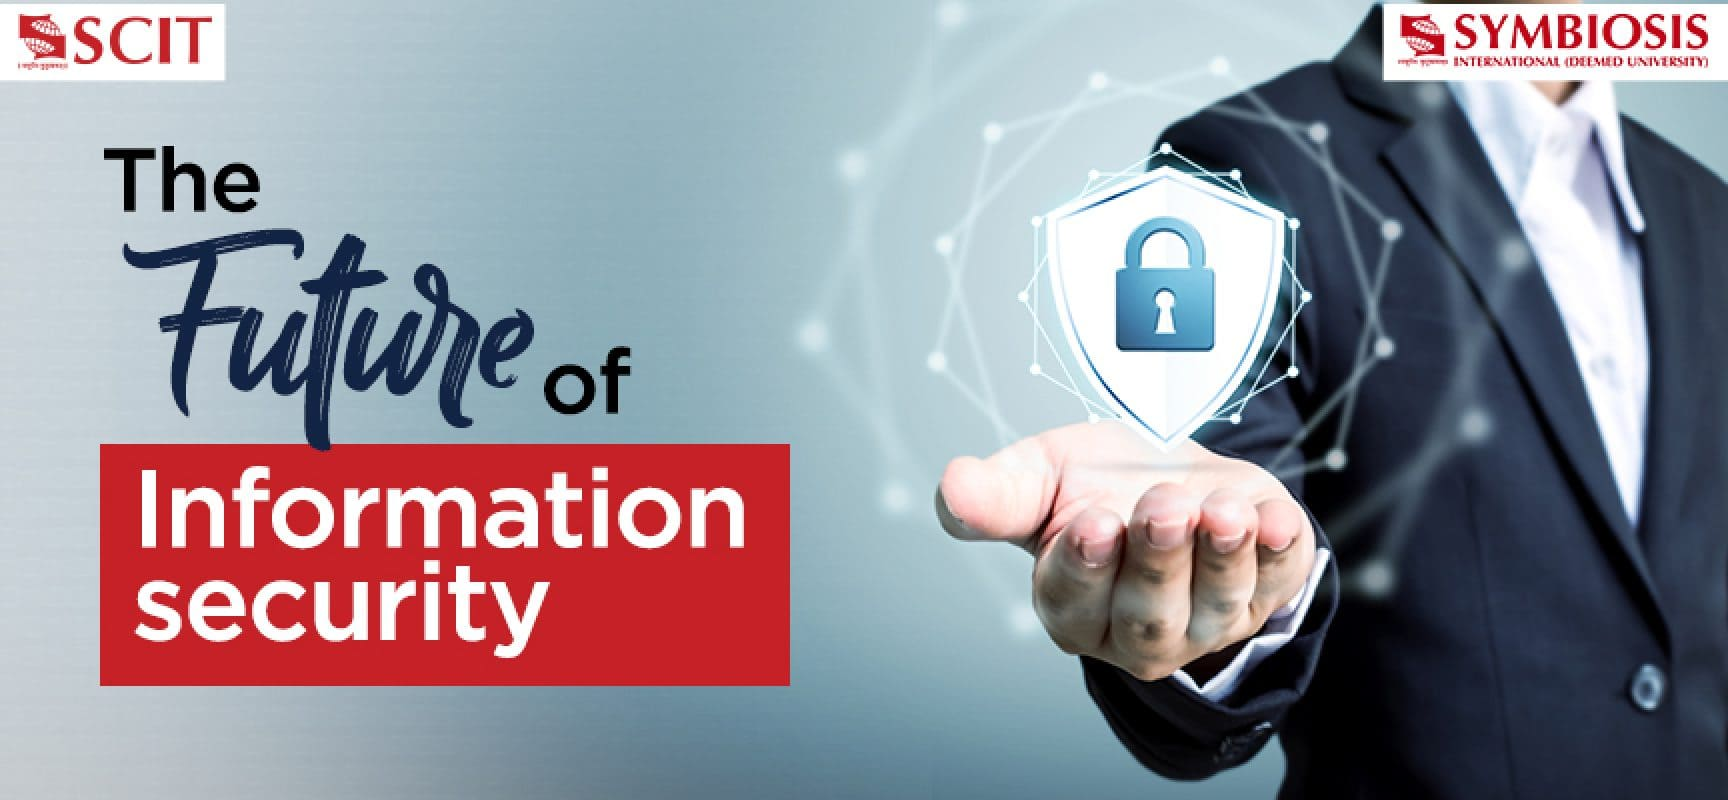 The Future of Information Security